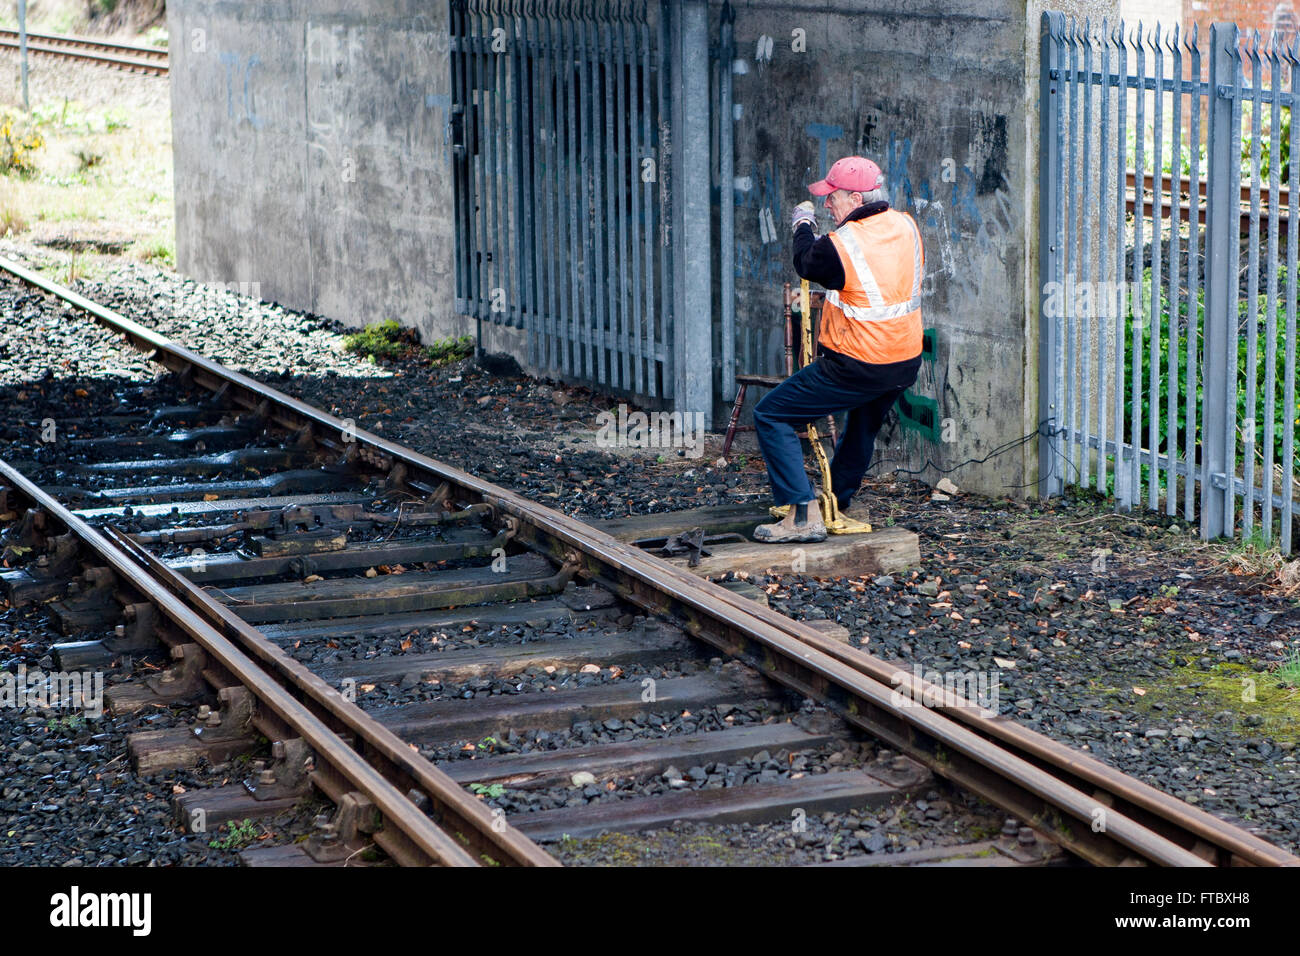 Whitehead, Co Antrim,UK 28th March 2016 . A railwayman Changing signals by hand - Stock Image